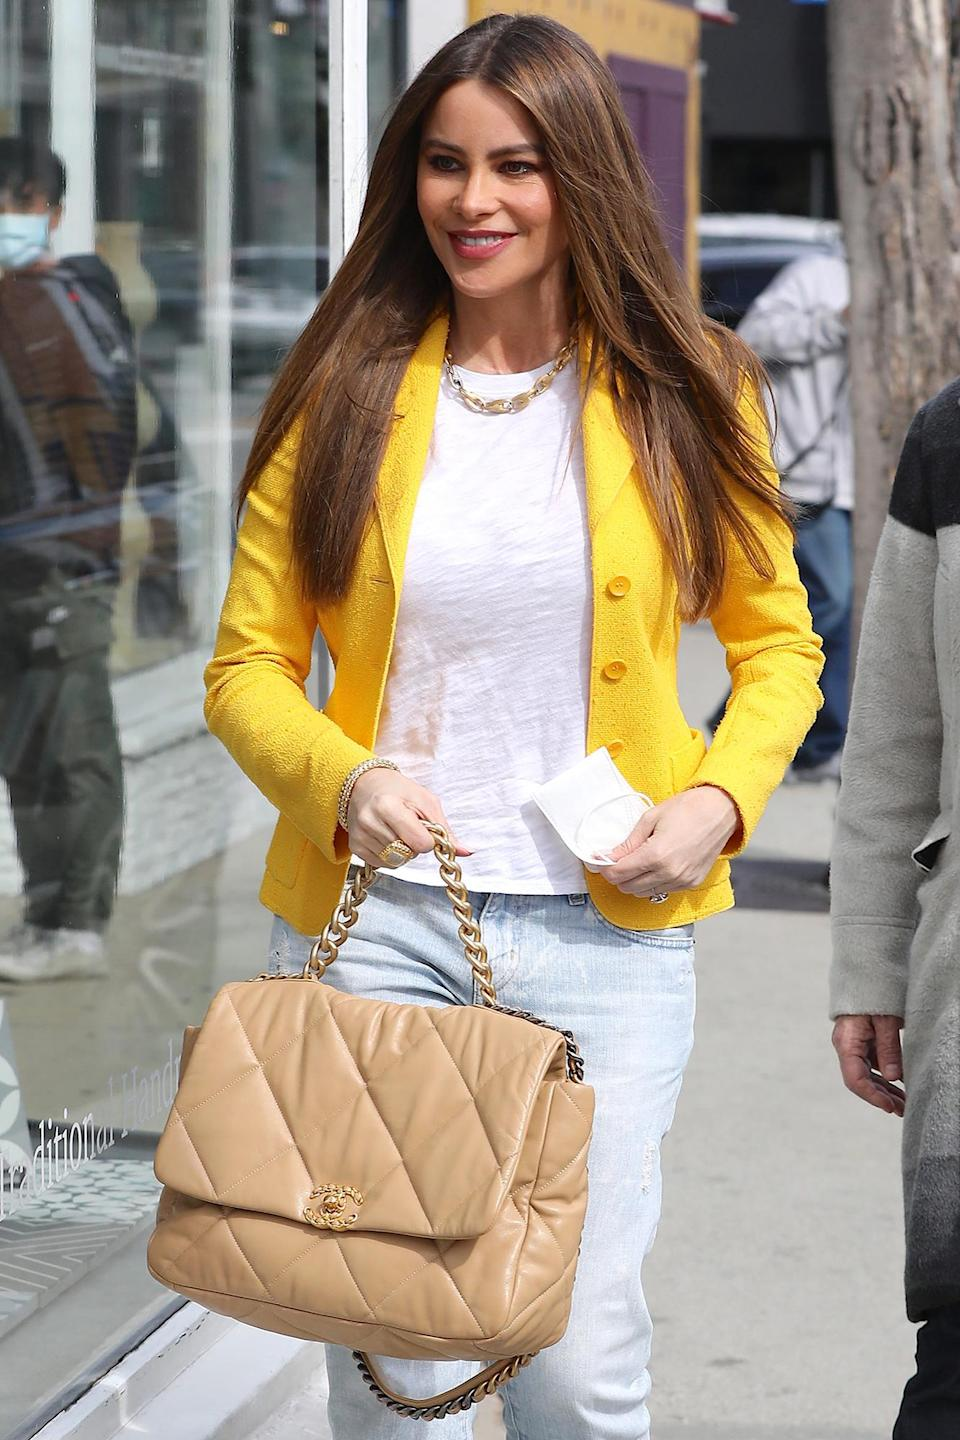 <p>Sofia Vergara stands out in a yellow blazer while out and about in Los Angeles over the weekend.</p>